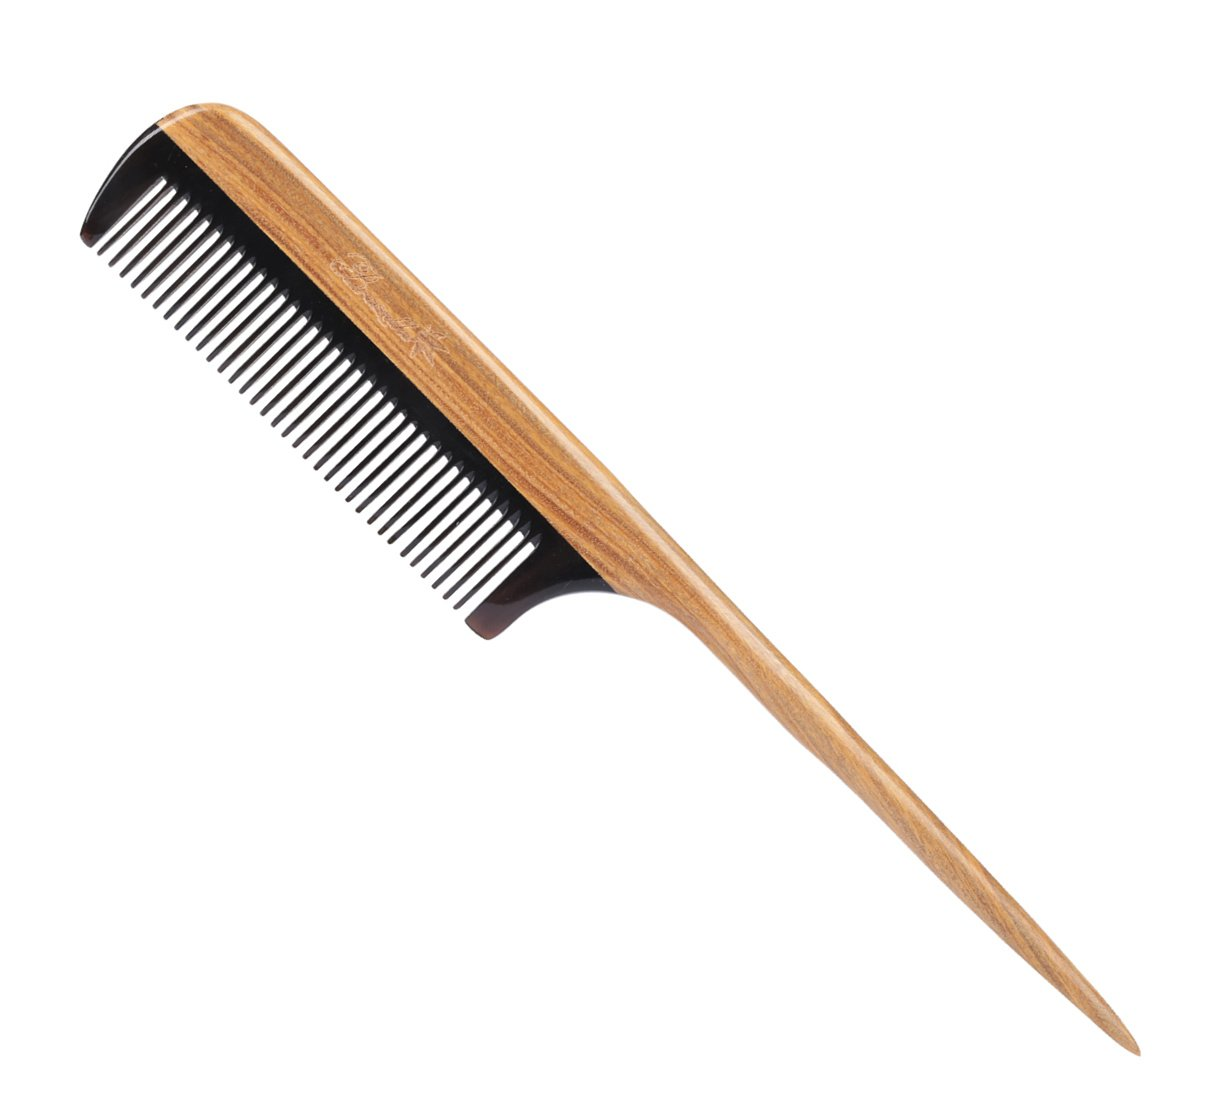 Breezelike Hair Combs - Fine Tooth Detangling Wooden Tail Comb - No Static Natural Sandalwood Buffalo Horn Comb for Women